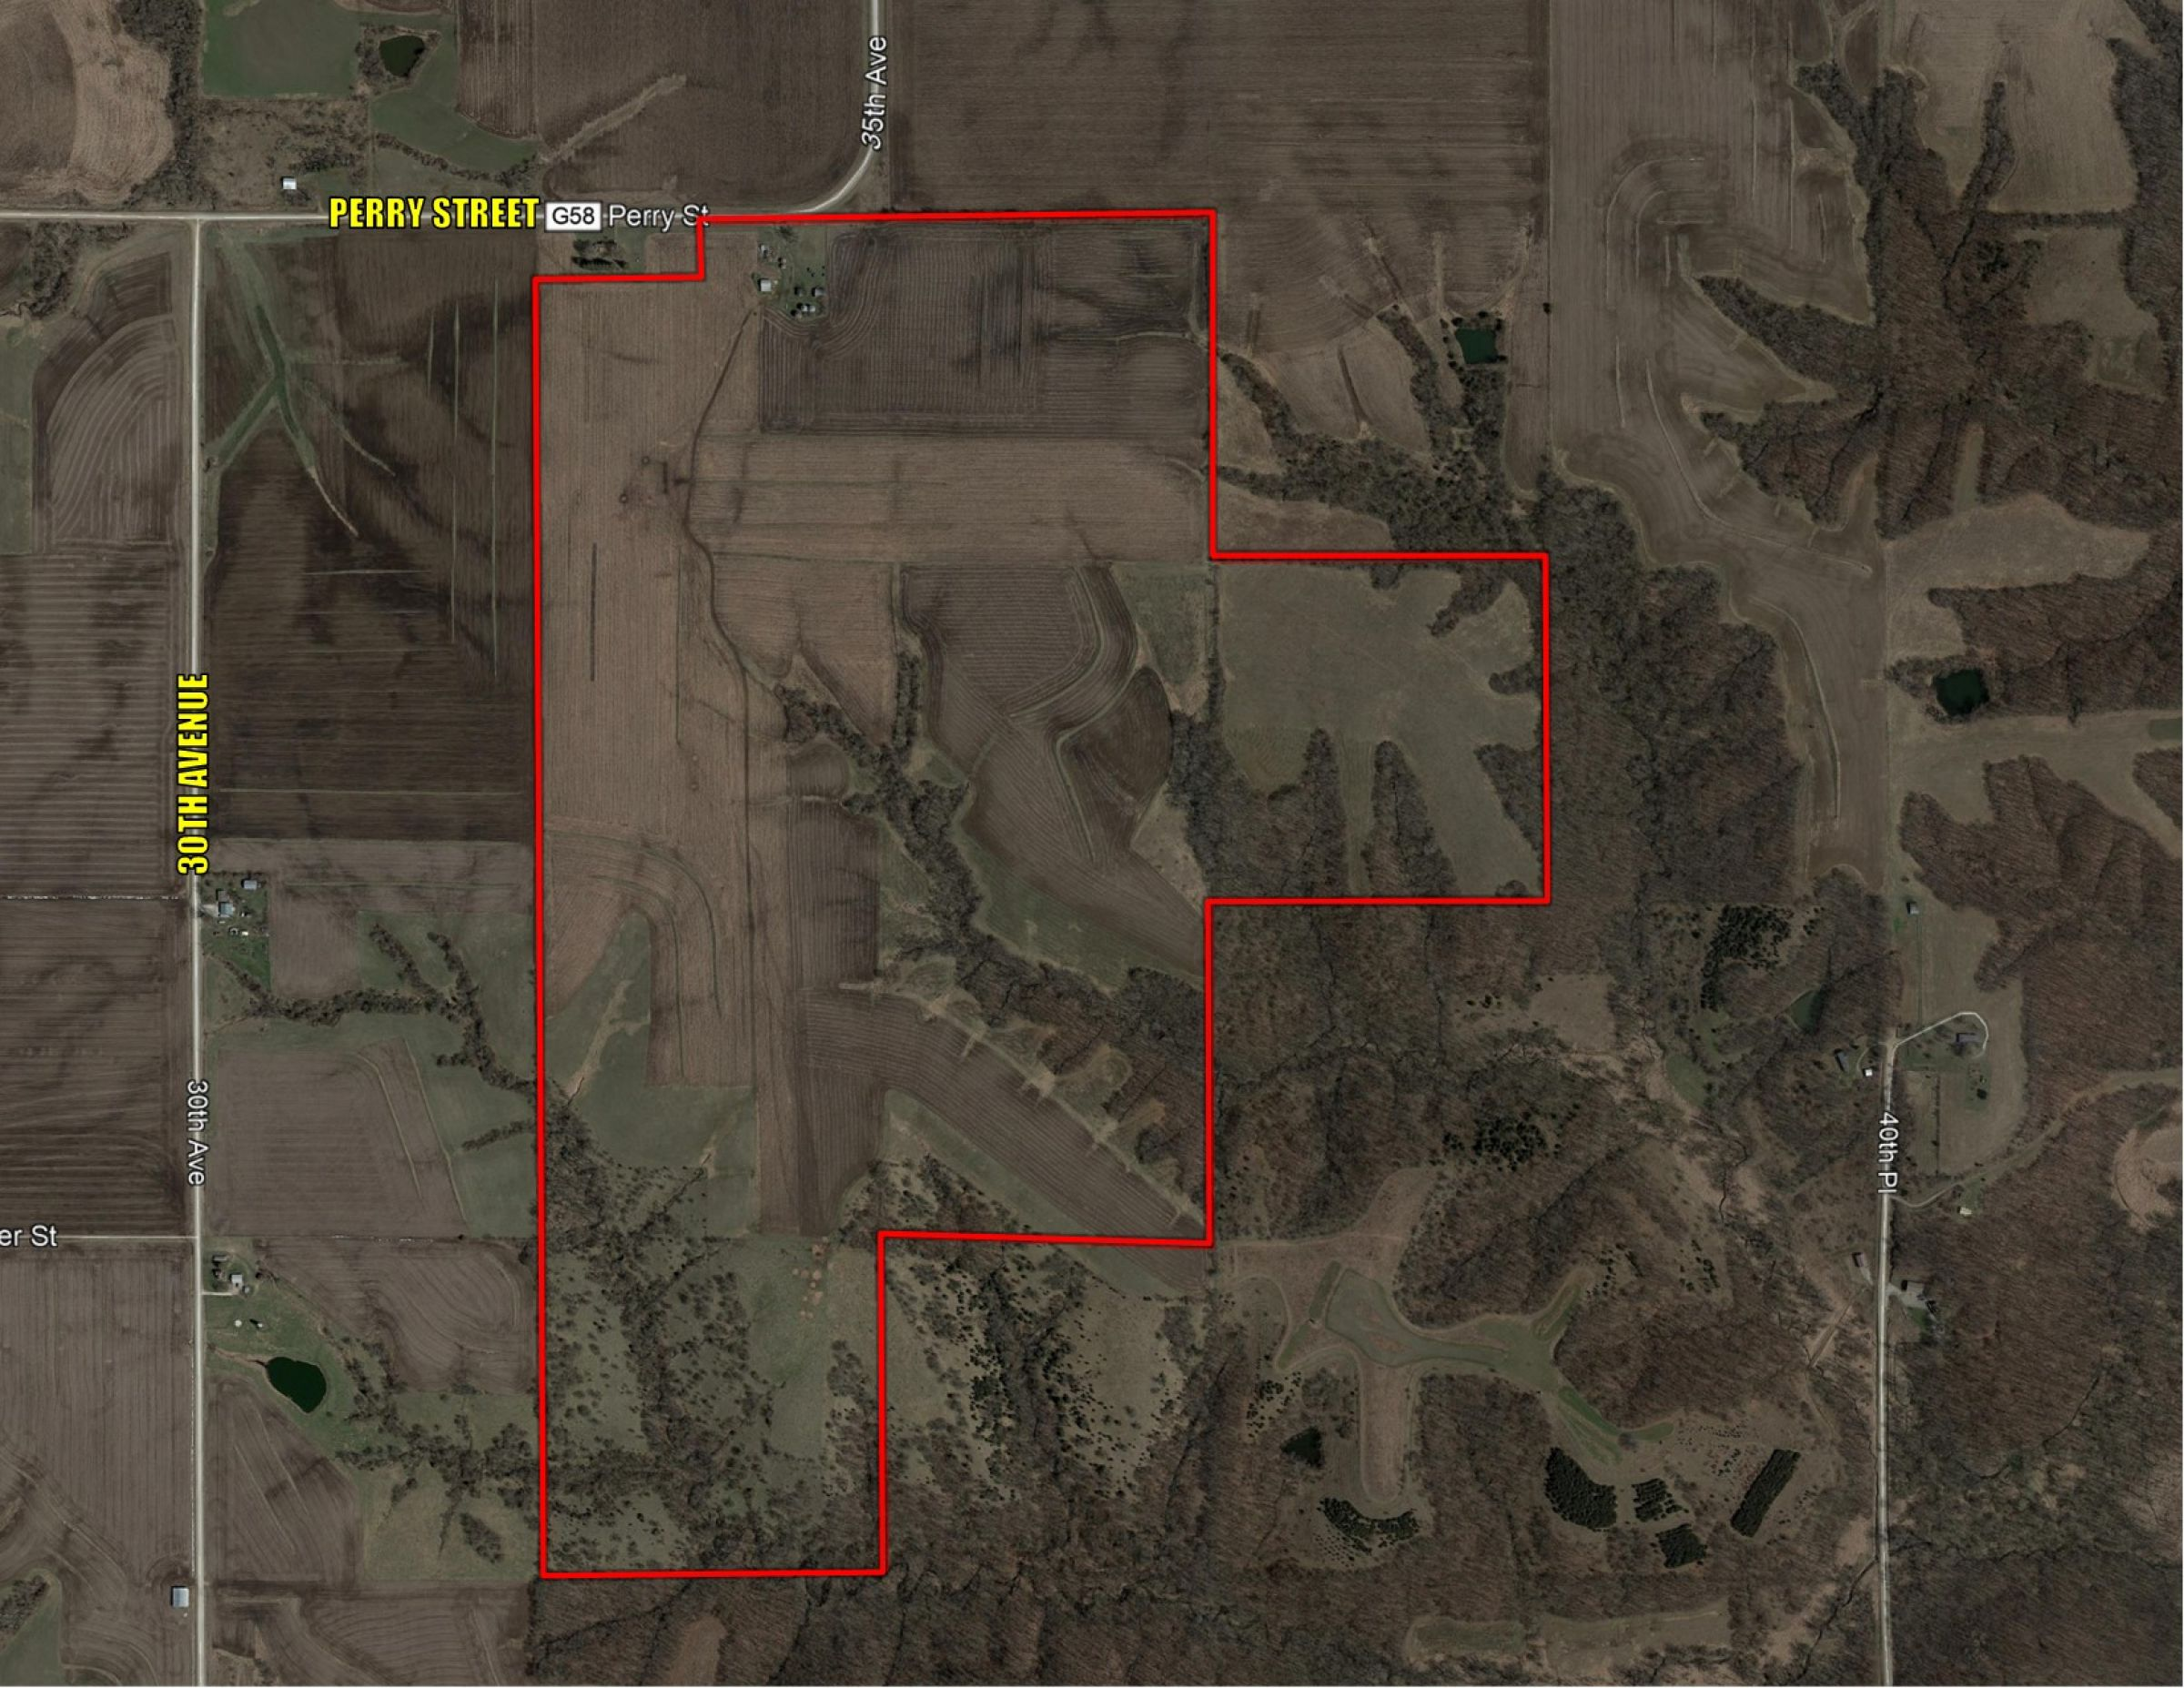 land-marion-county-iowa-317-acres-listing-number-15157-3-2020-09-04-172658.jpg